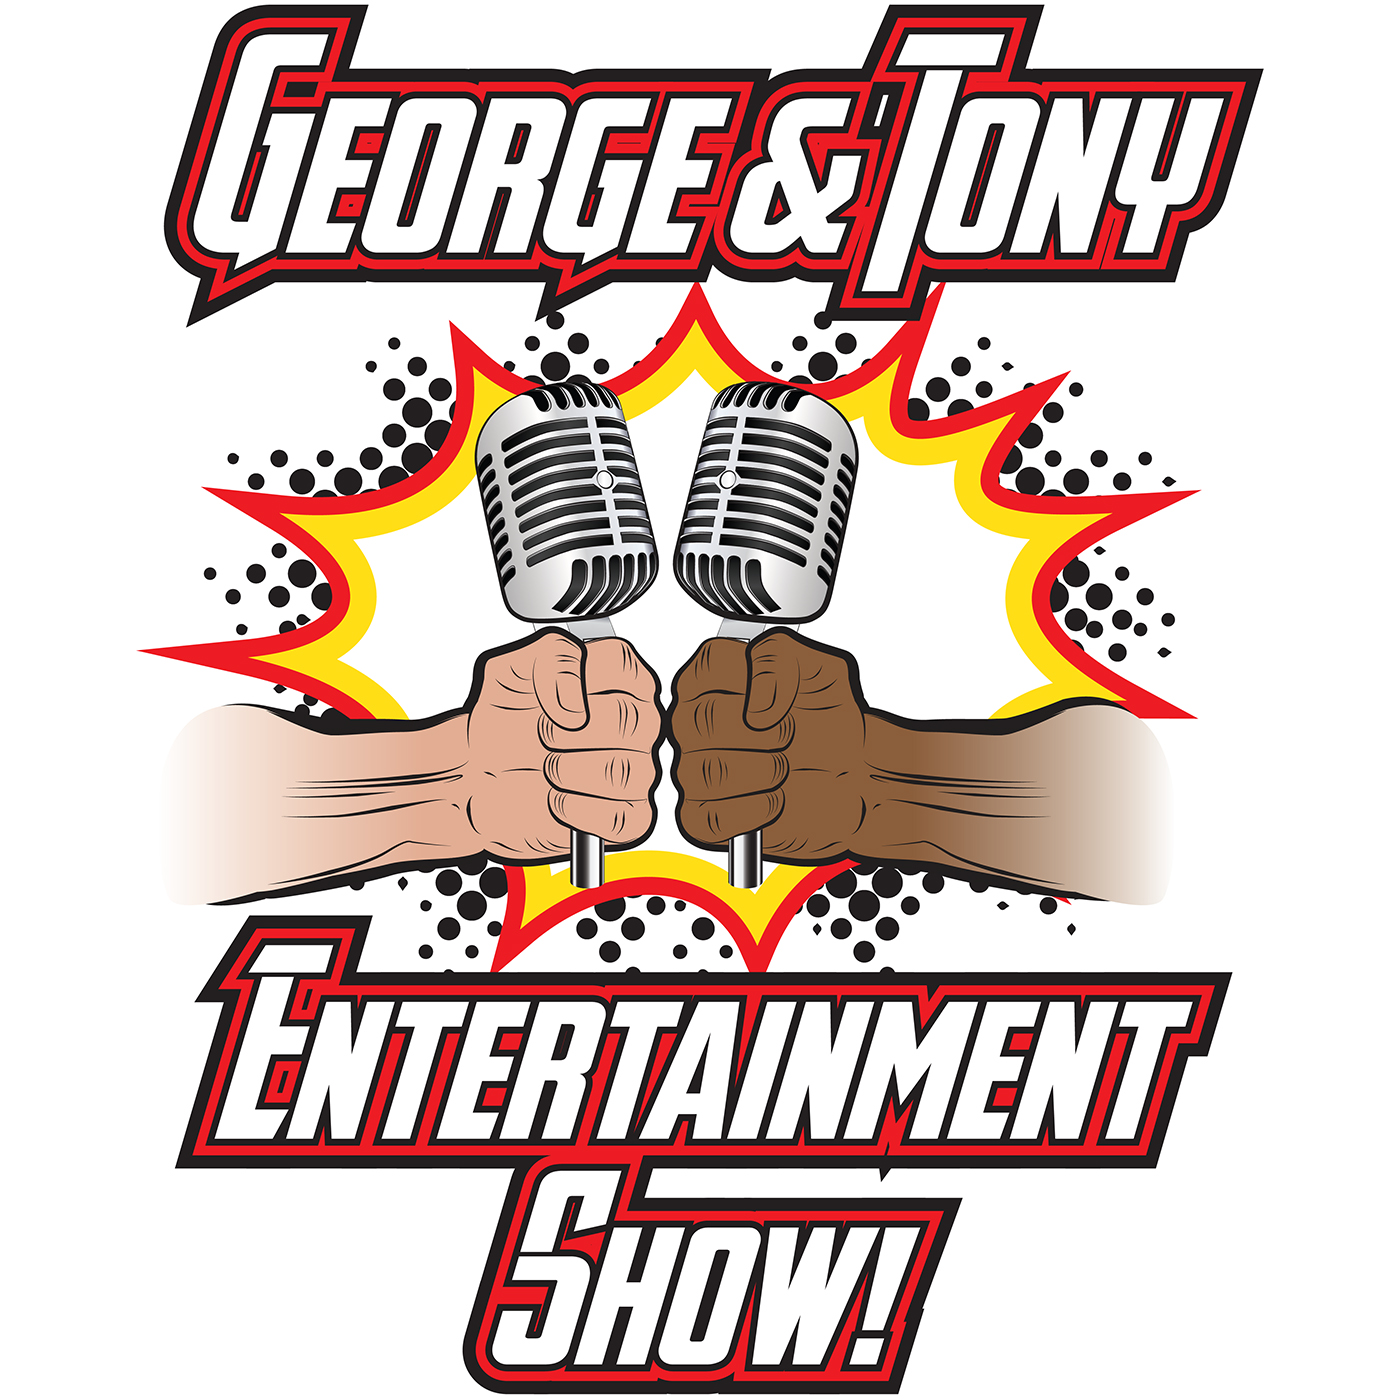 George and Tony Entertainment Show #157